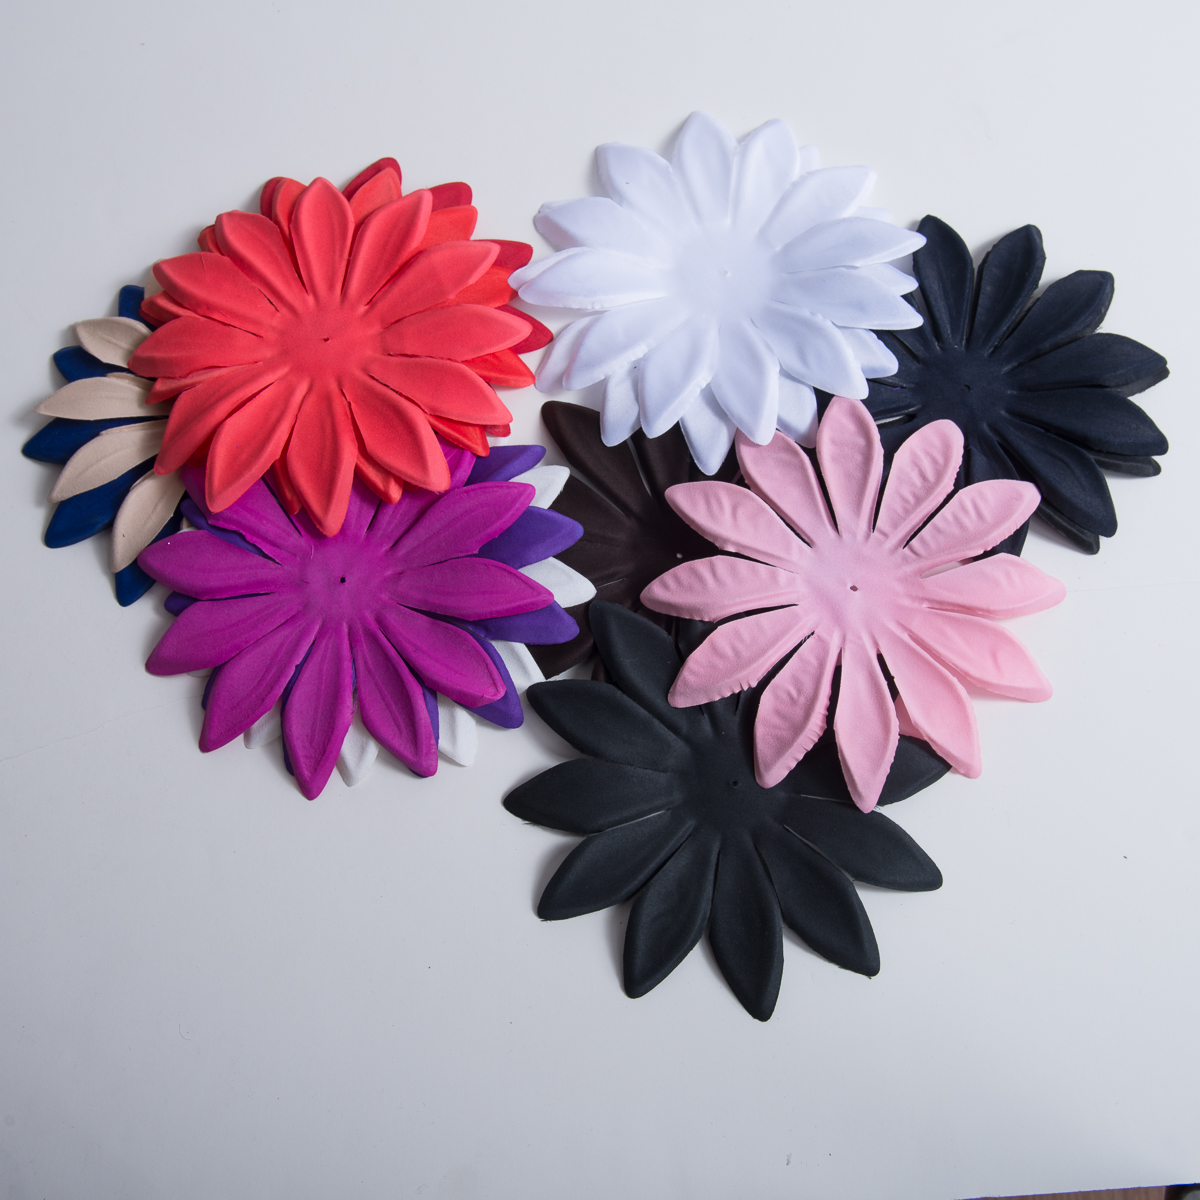 Large Satin Fabric Flower Petals 802012 Sun Yorkos Zoria